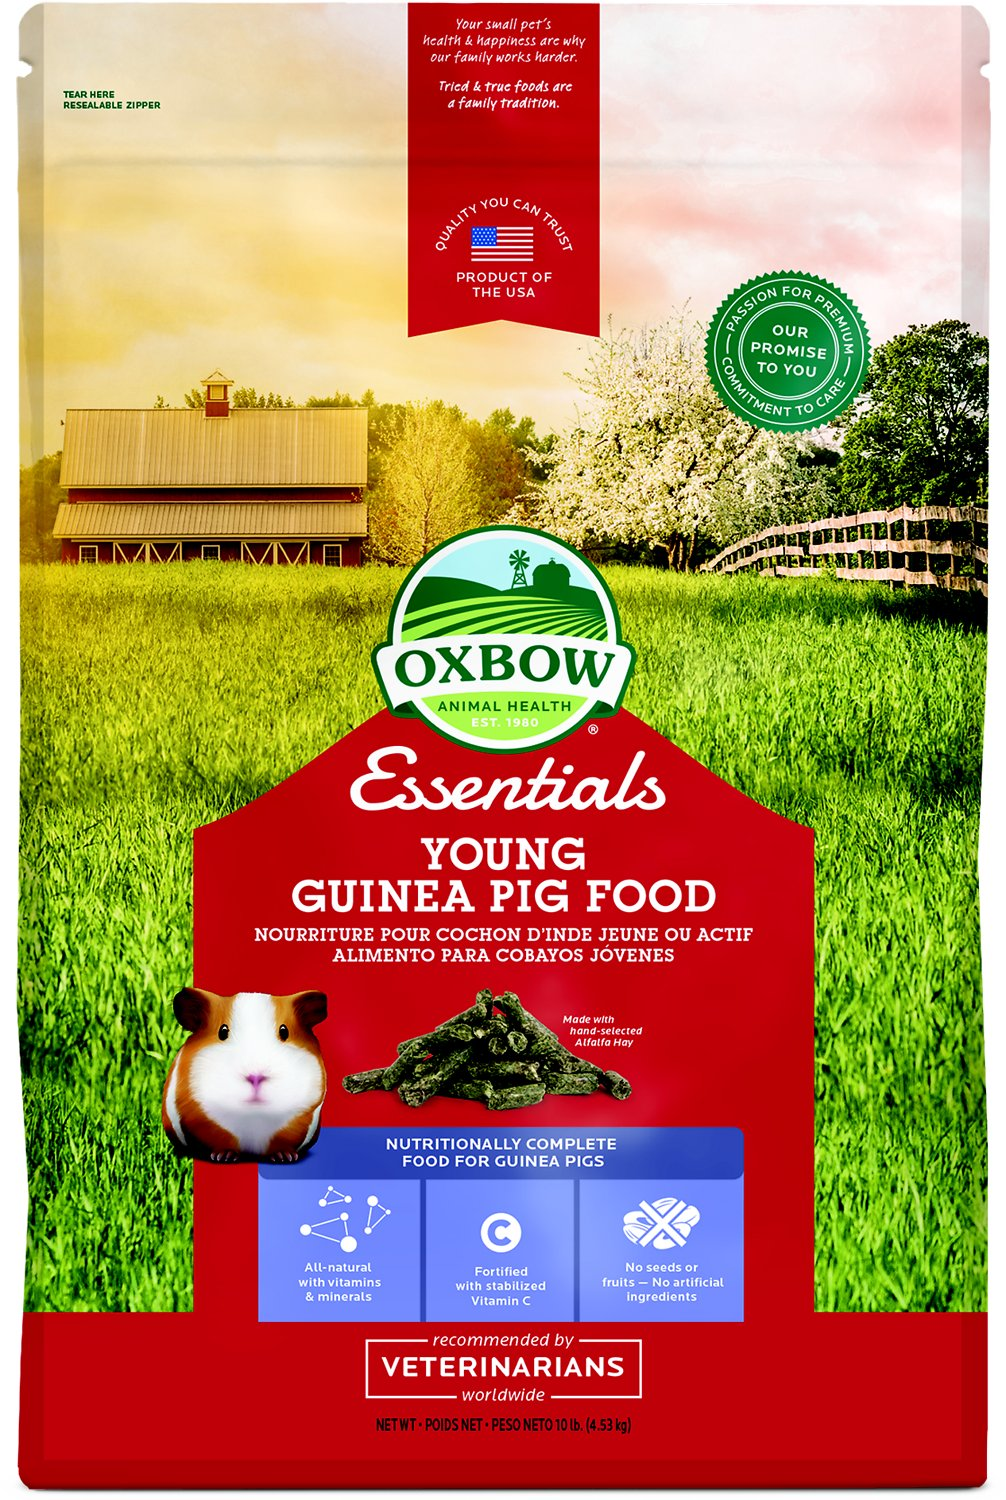 Oxbow Essentials Cavy Performance Young Guinea Pig Food Image